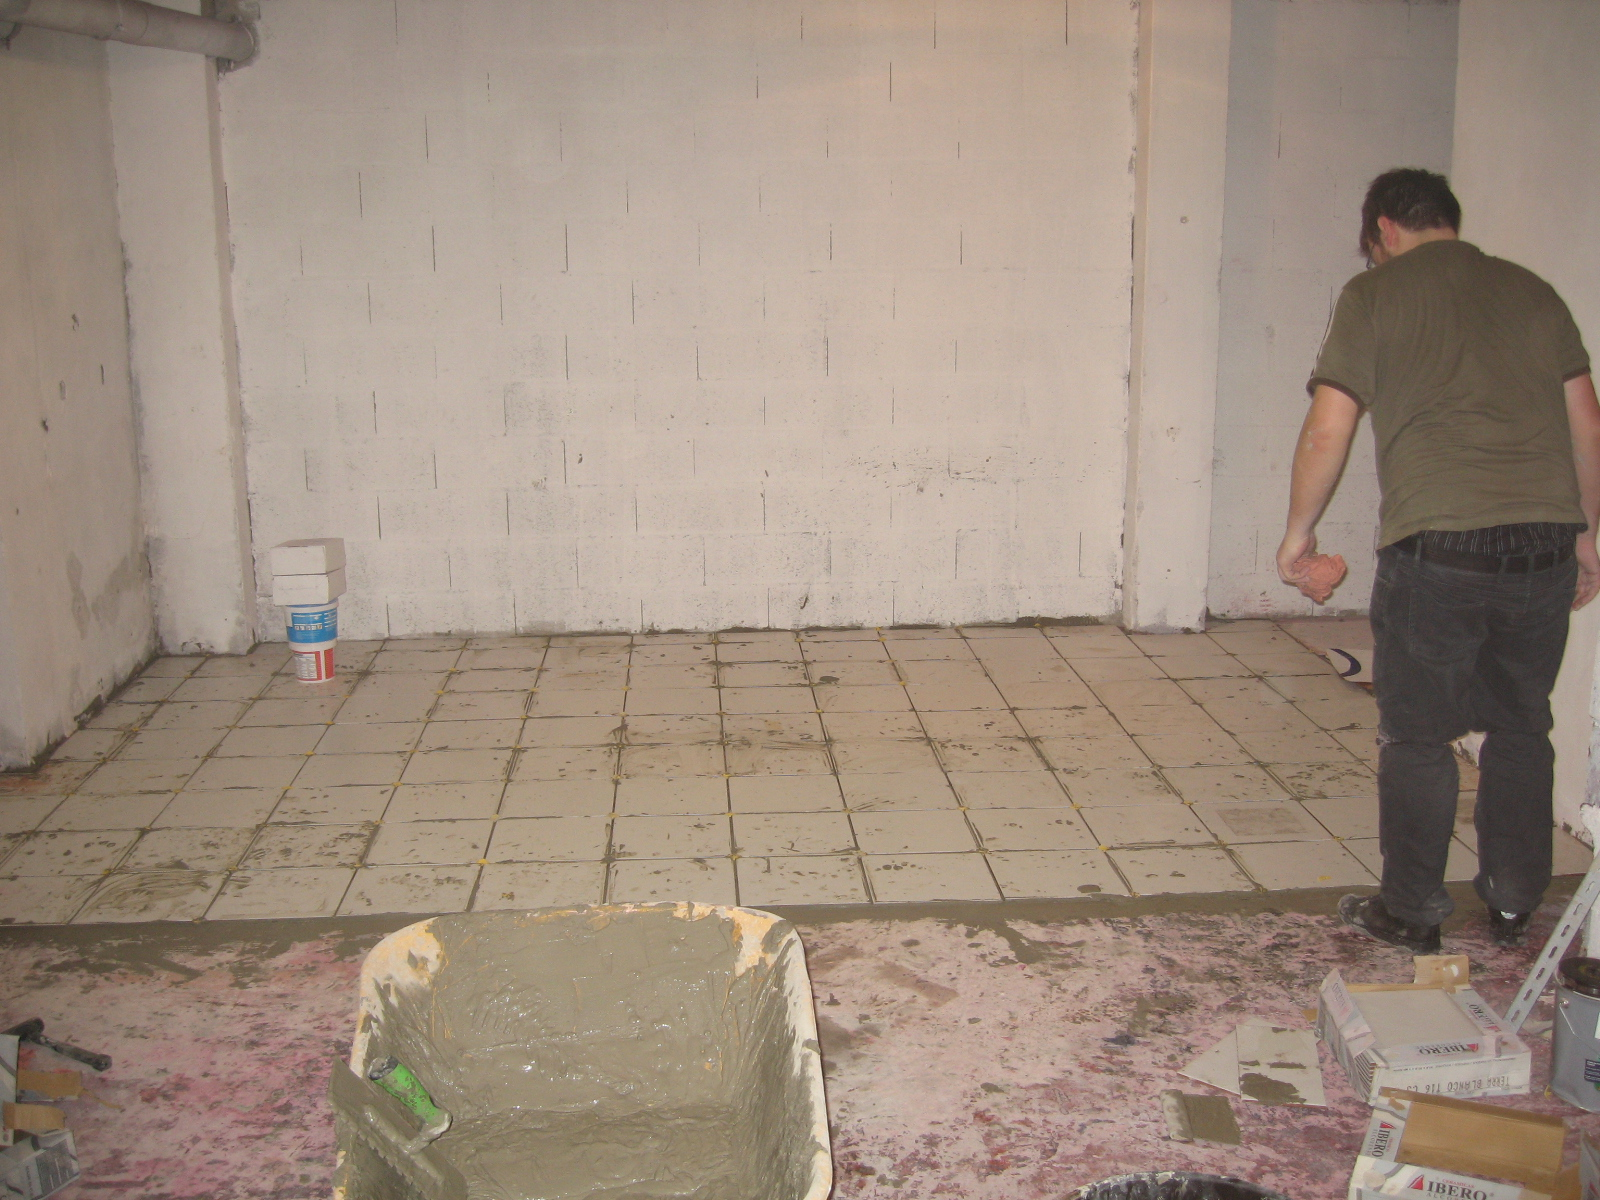 Carrelage Sol Moche Que Faire new room's floor almost done ! « electrolab